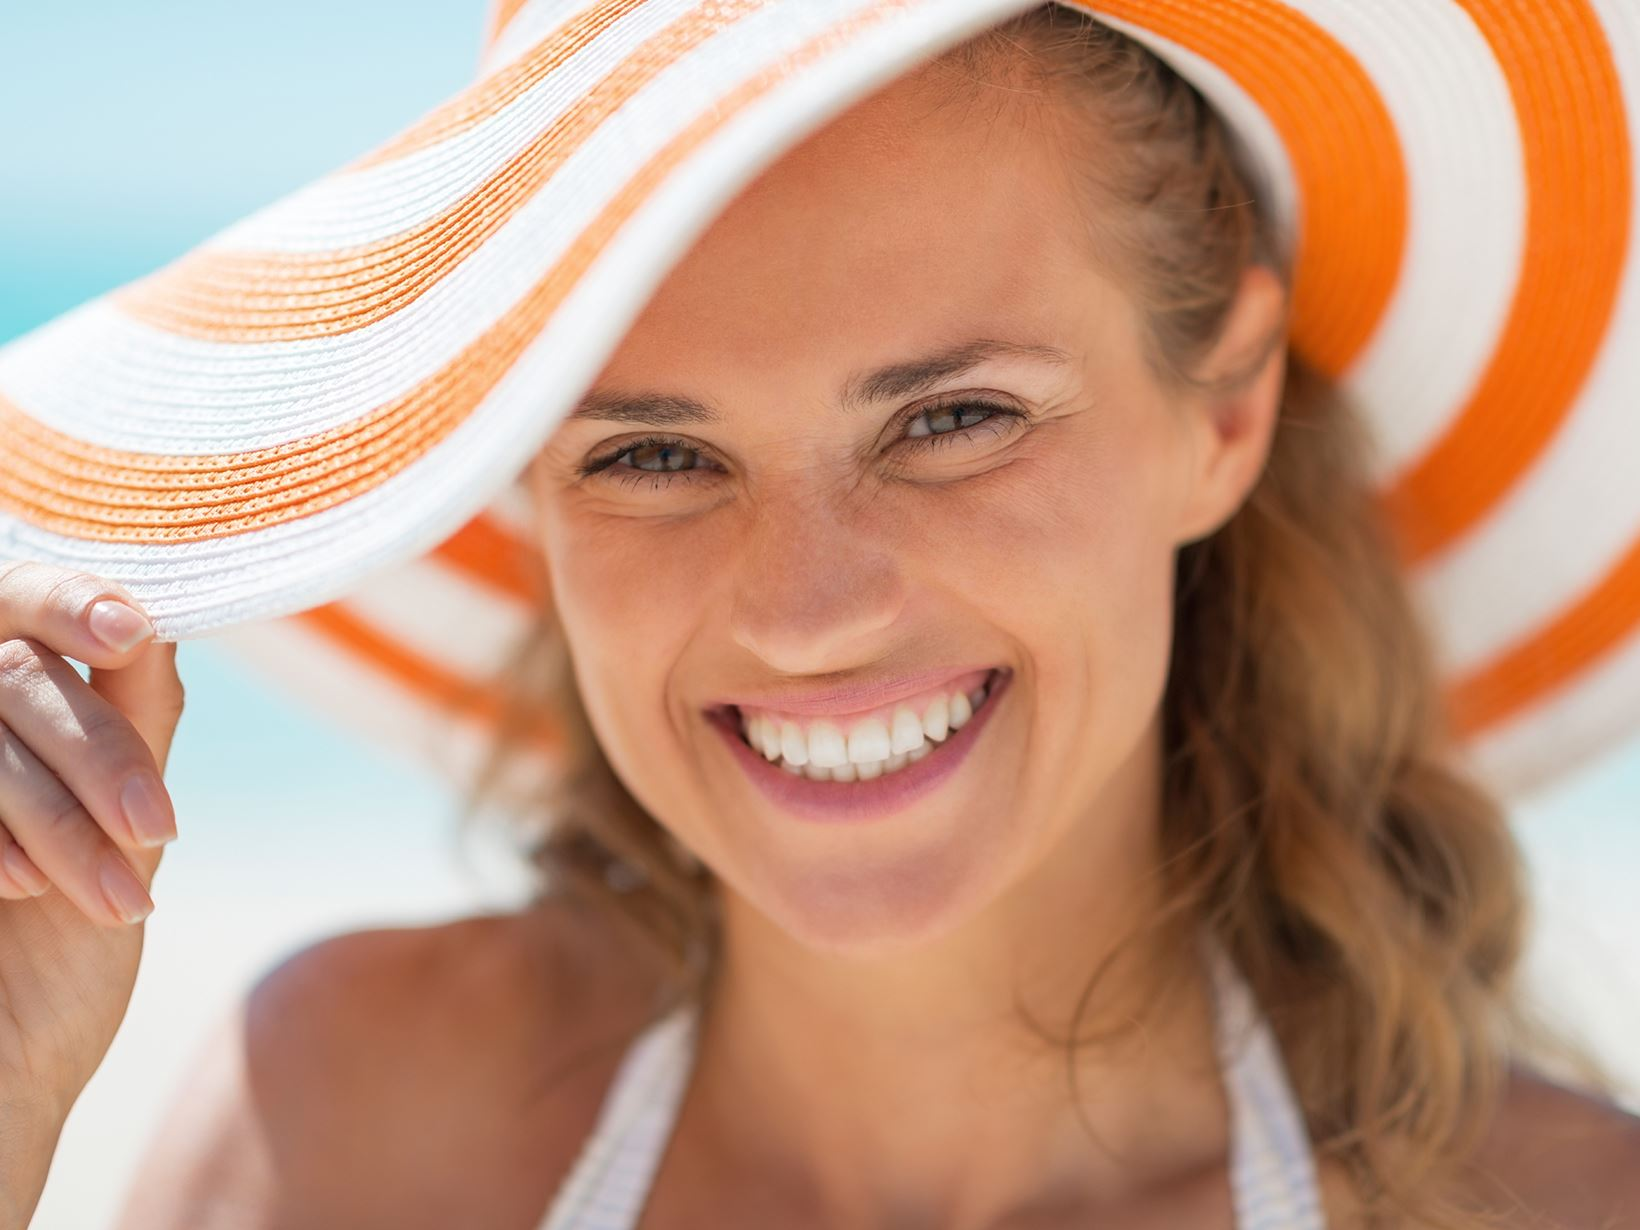 lady in orange hat smiling